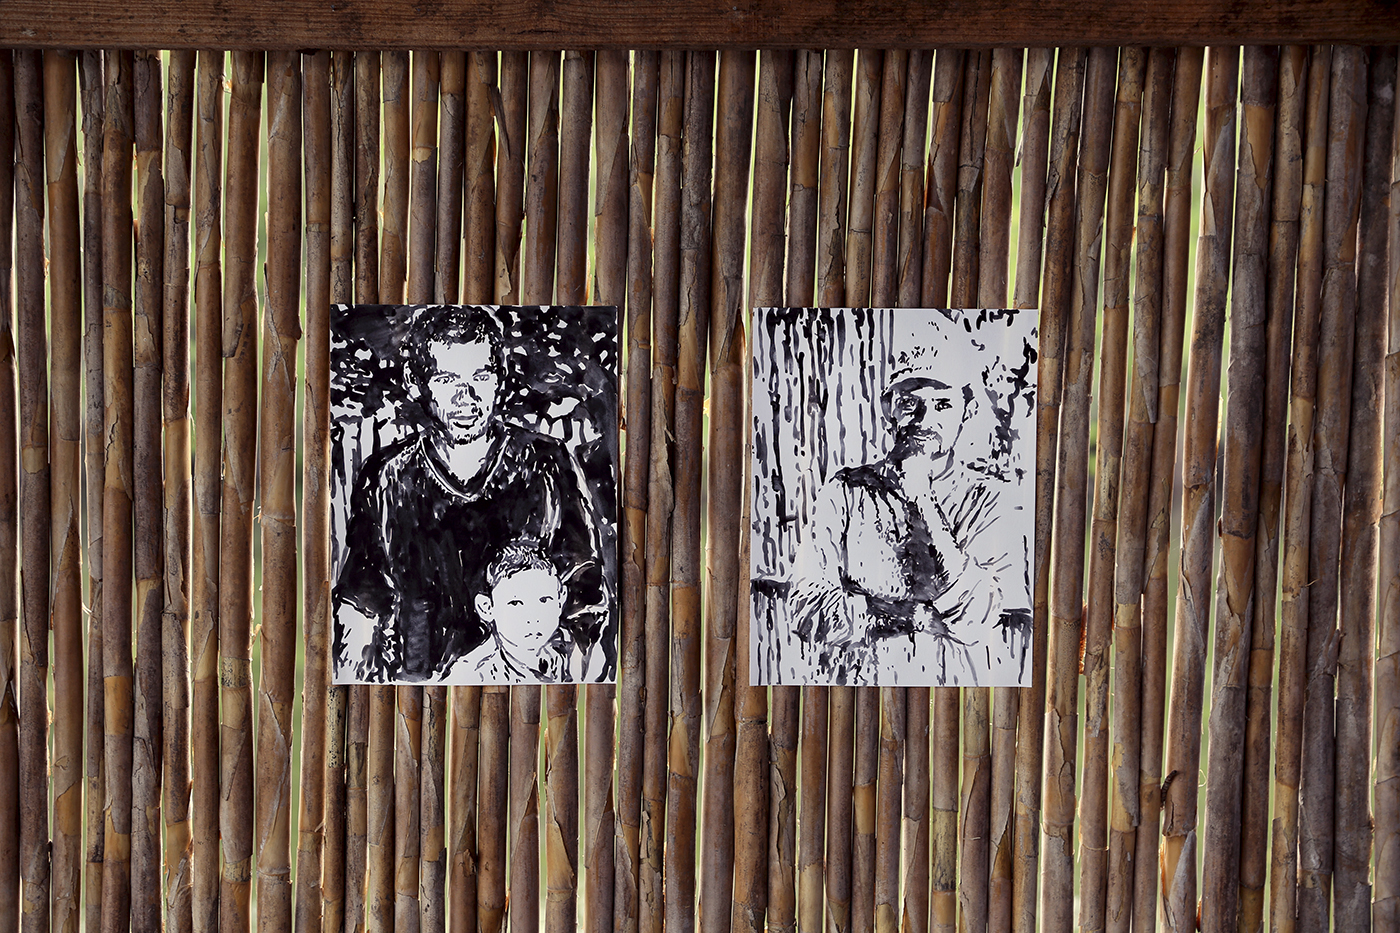 Portraits of fishermen  ink on paper 11 x 14 inches each